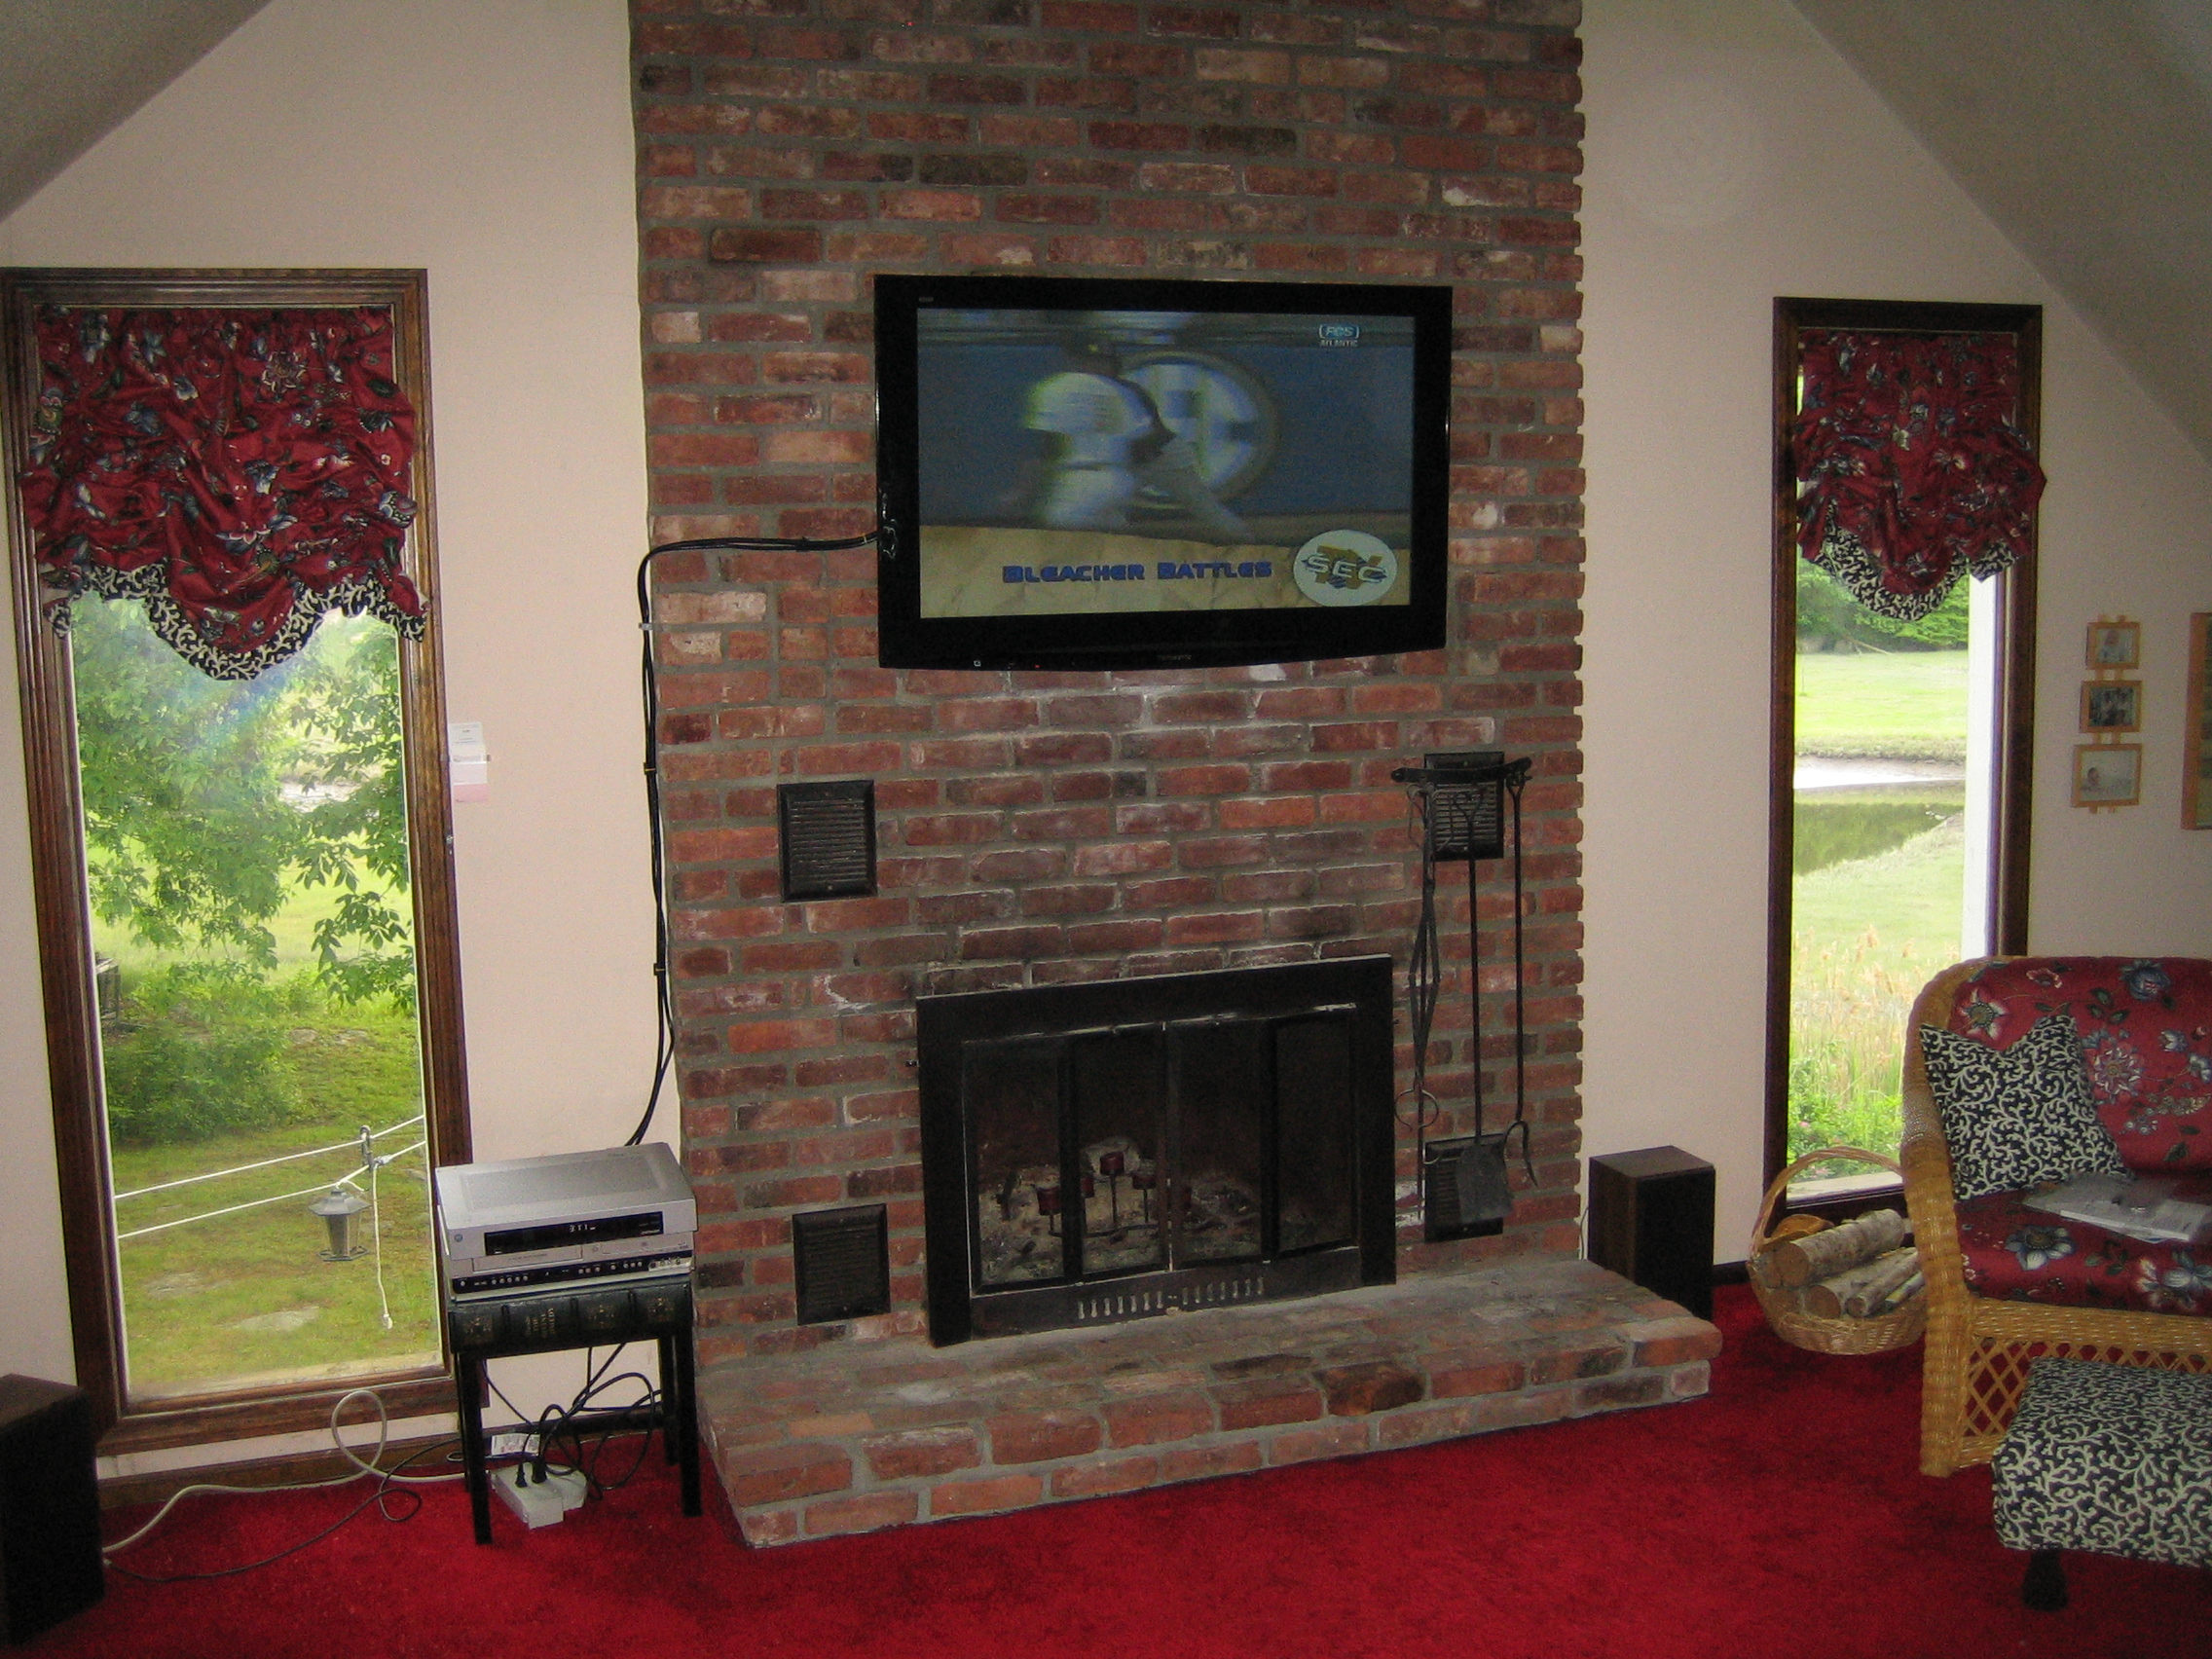 Tv mounting ideas tv installation over a brick fireplace living room gorgeous why a tv should never be mounted over fireplace of mounting tv yes you can mount your tv to your brick fireplace without the wires showing the wires are siliconed into the mortar joints painted over